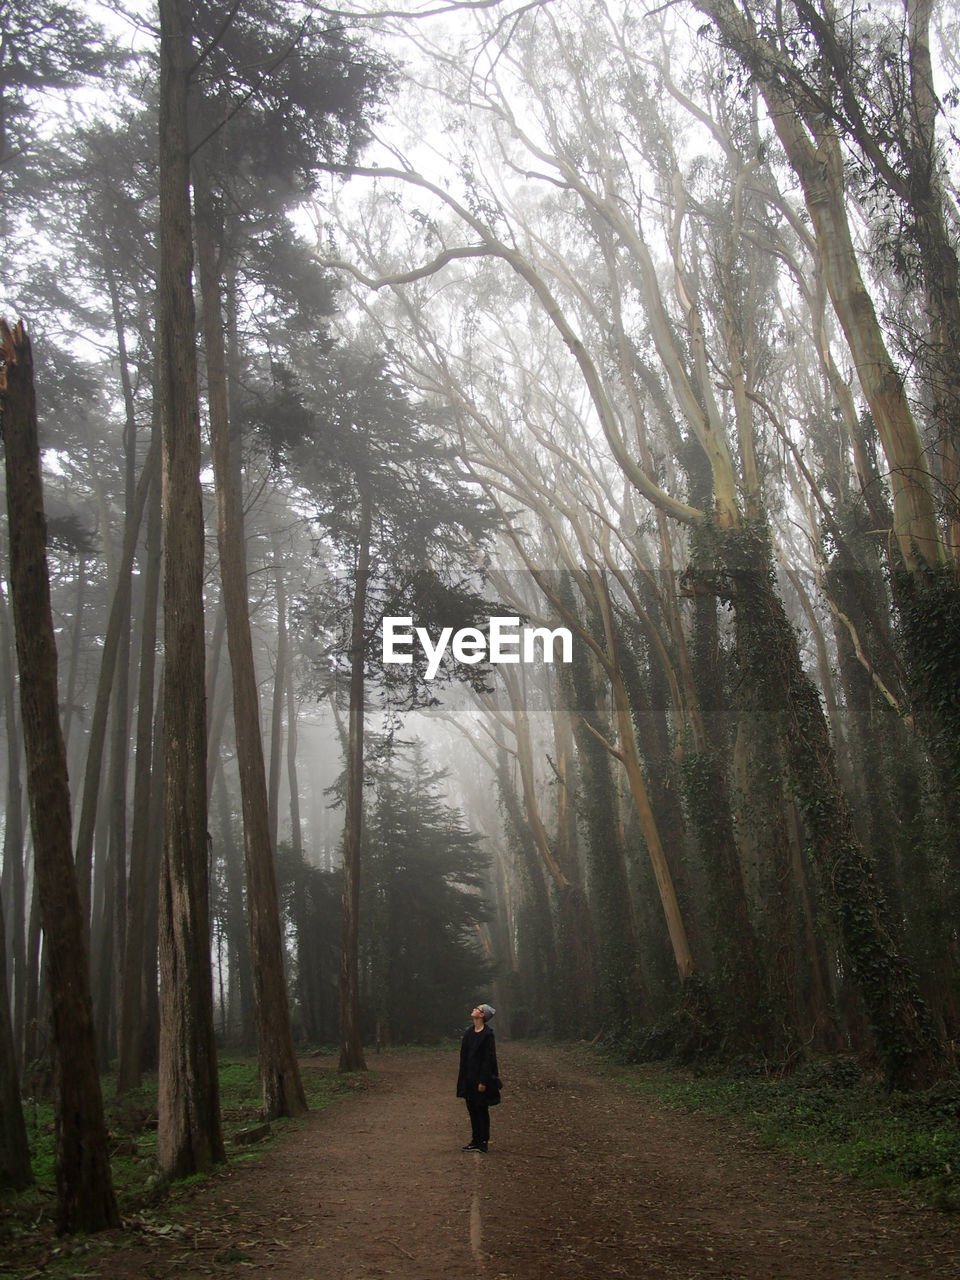 Man Standing On Dirt Road Amidst Trees In Forest During Foggy Weather At Presidio Park